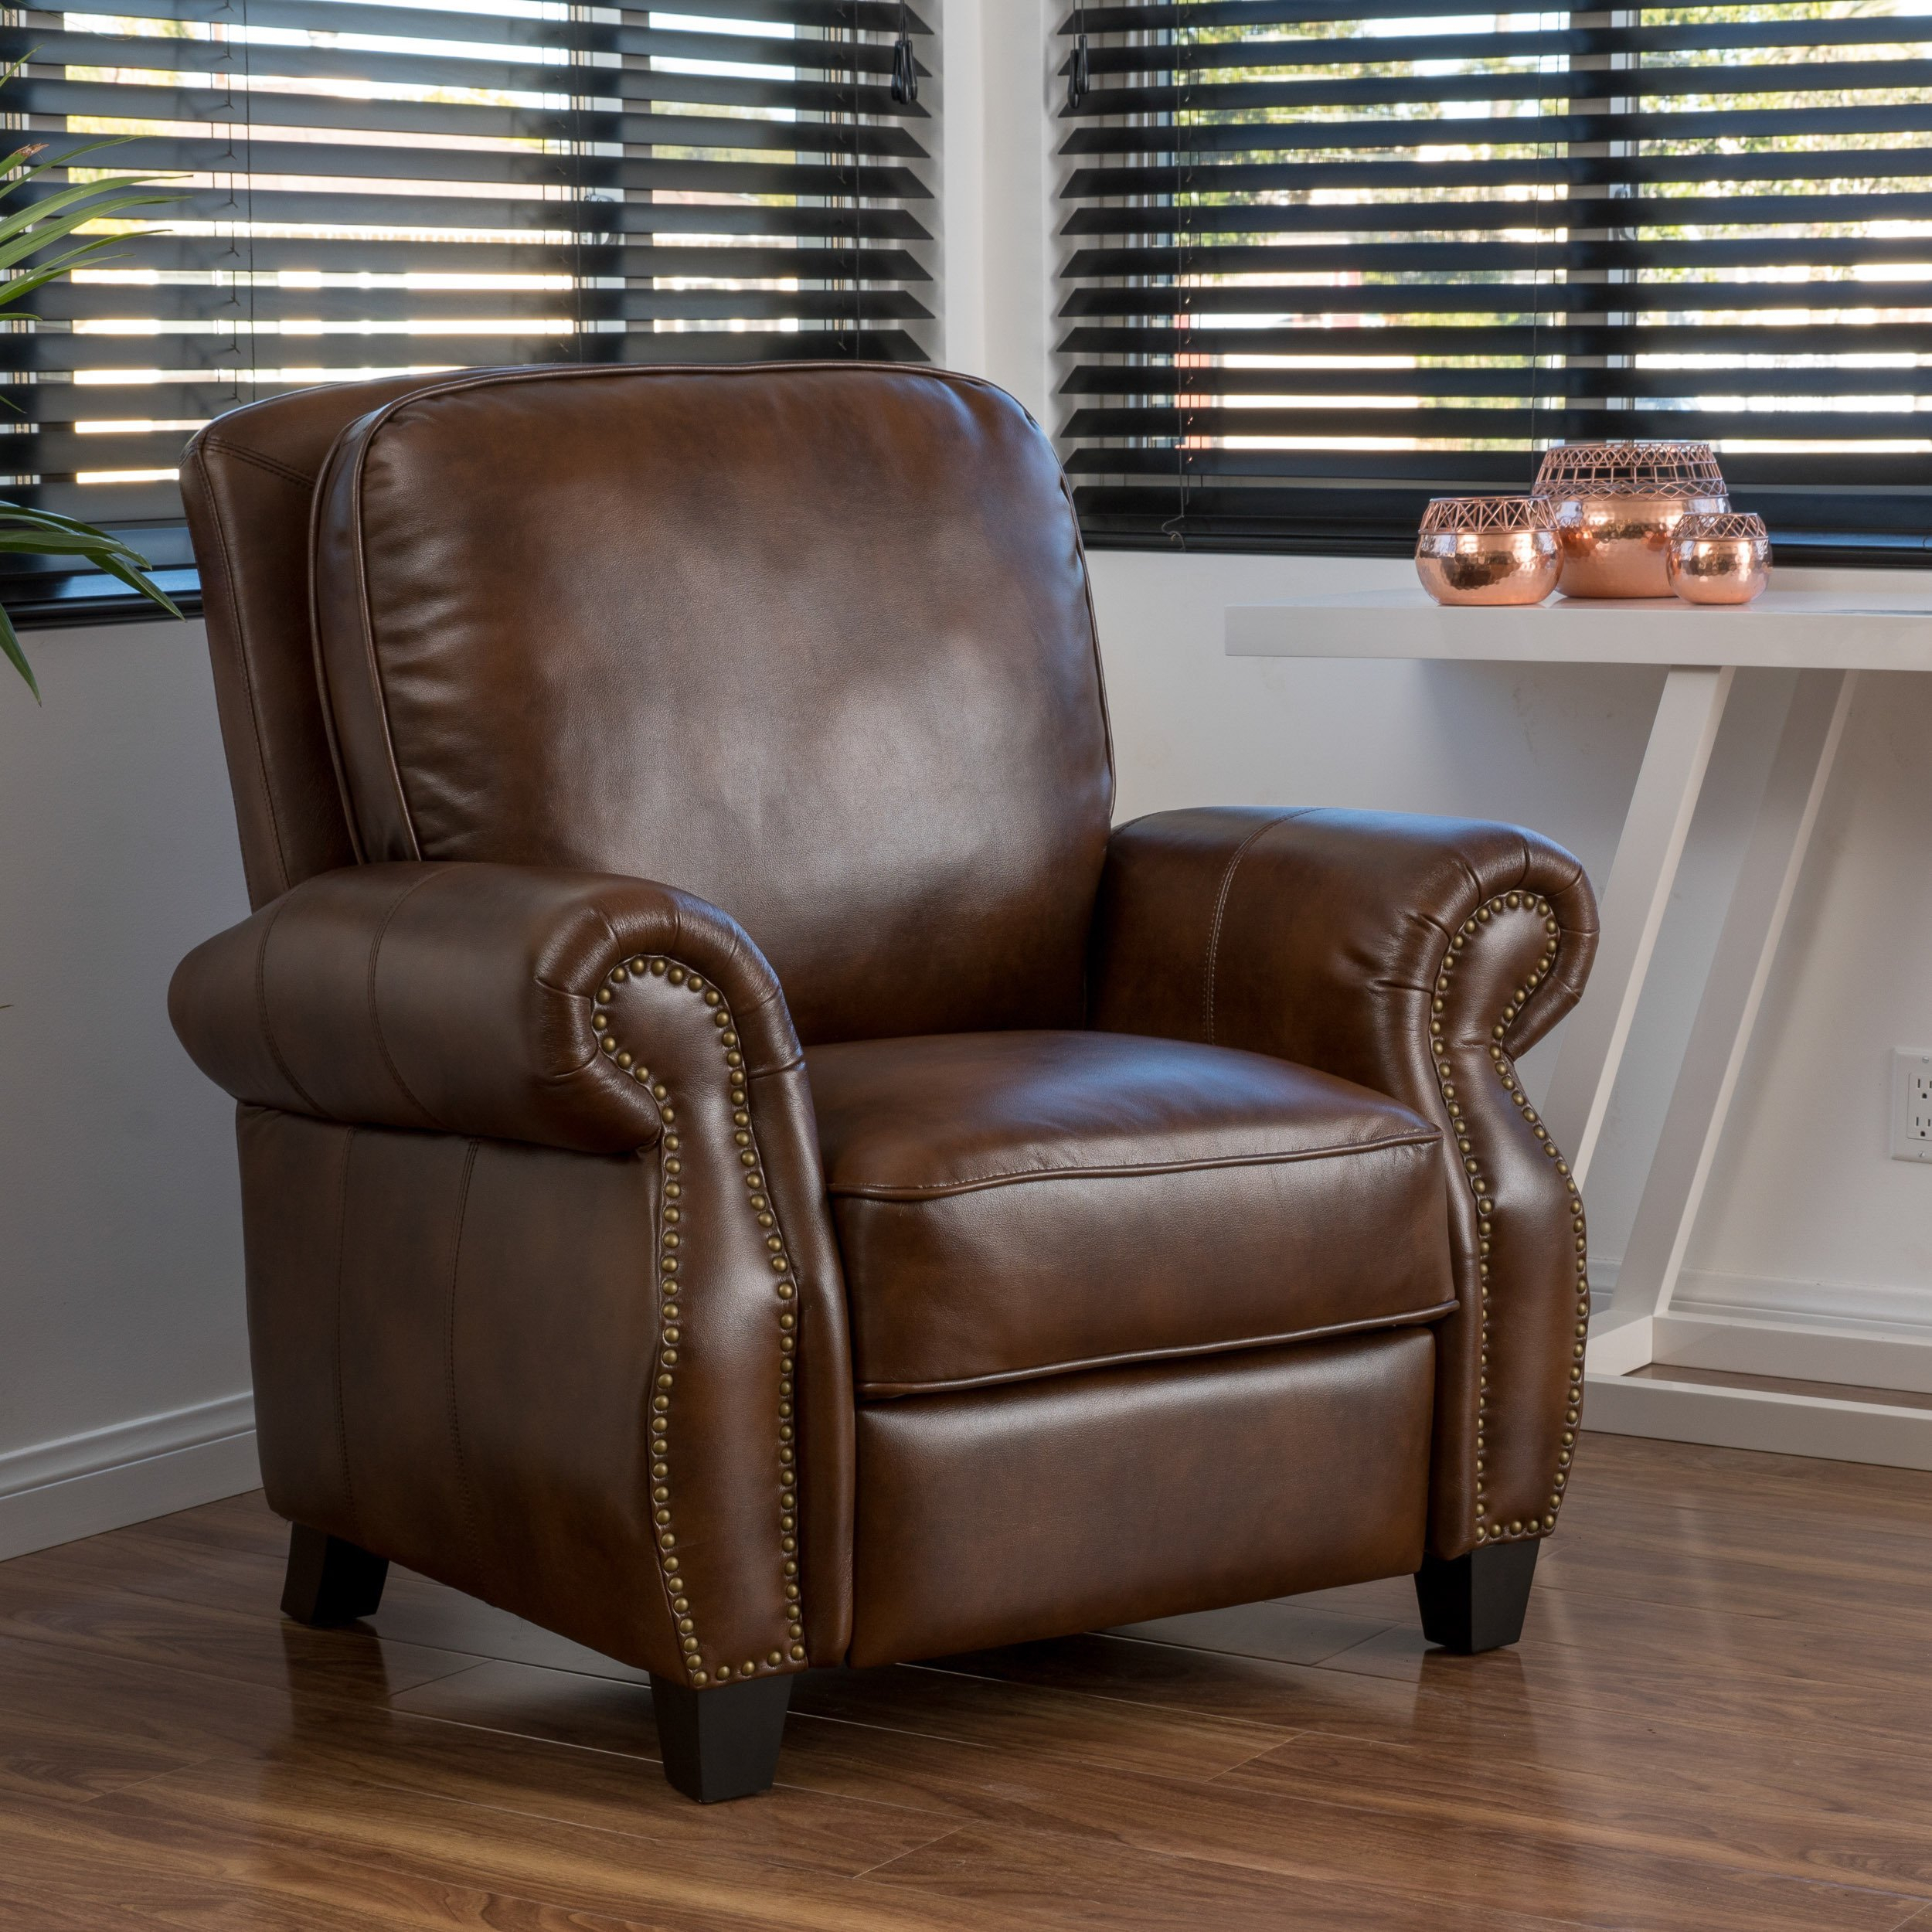 Buy Brown Christopher Knight Home Living Room Chairs Online At Inside Dale Iii Polyurethane Swivel Glider Recliners (Image 3 of 20)